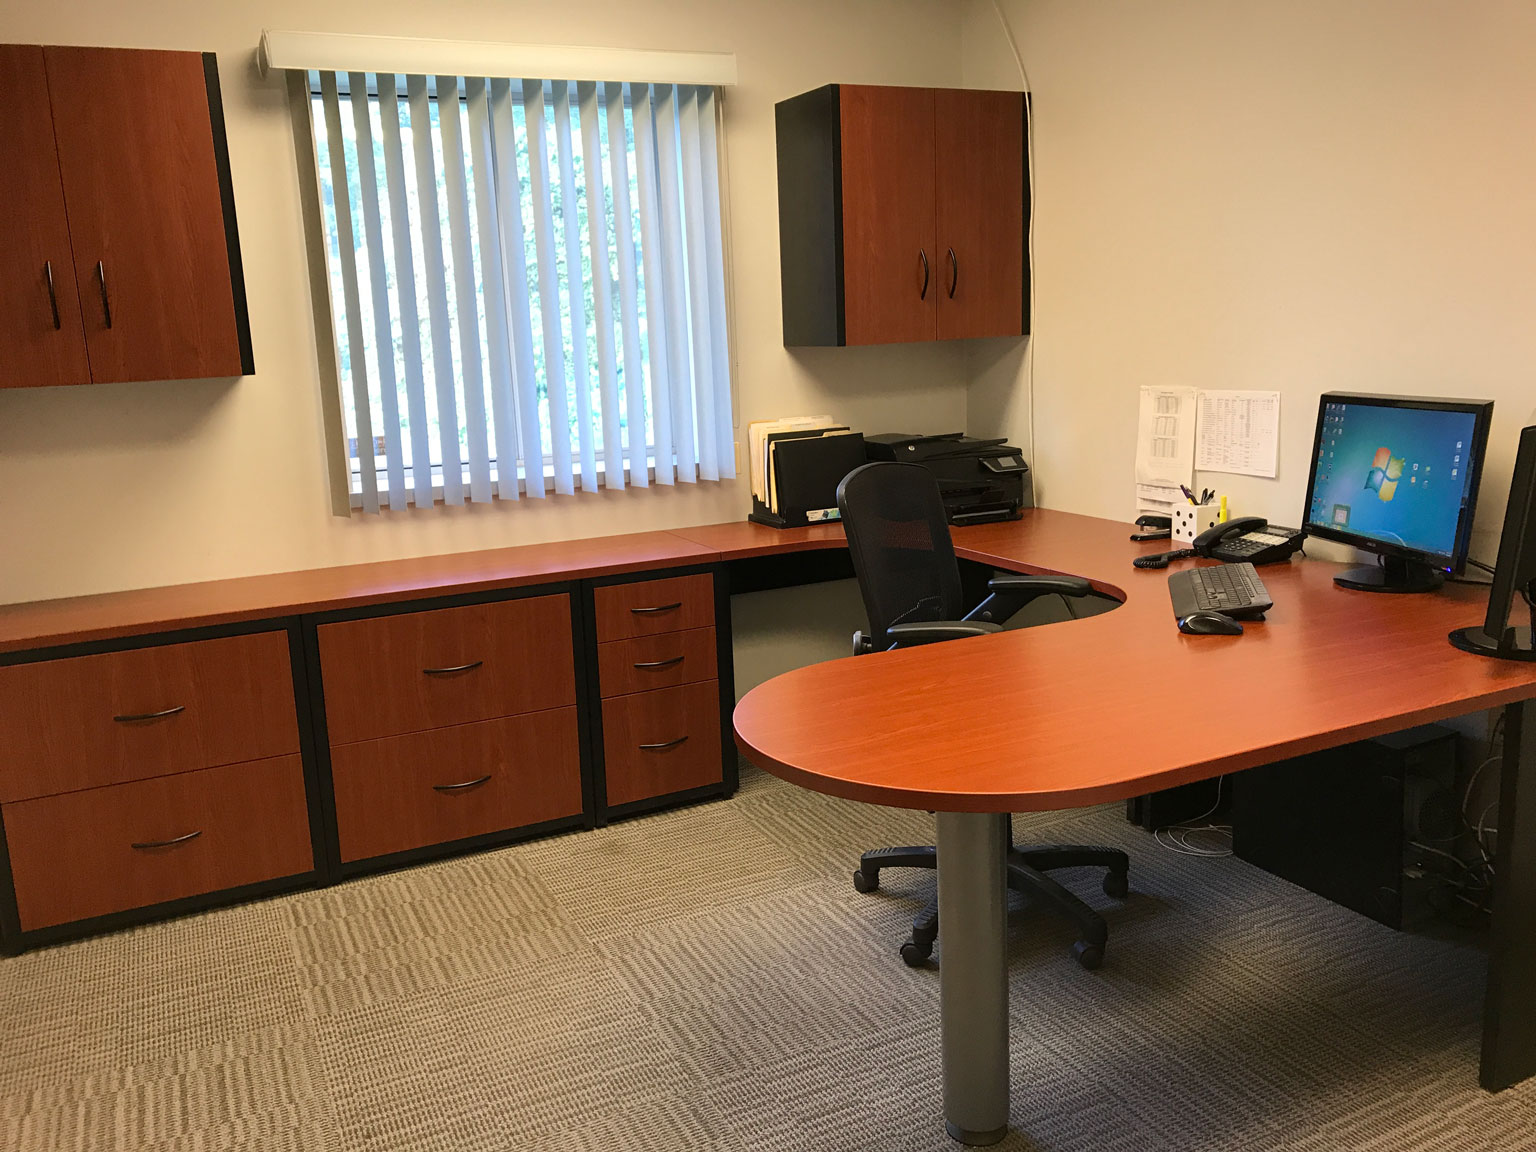 Office Furniture: Office Furniture And Work Surfaces » Komponents Laminated